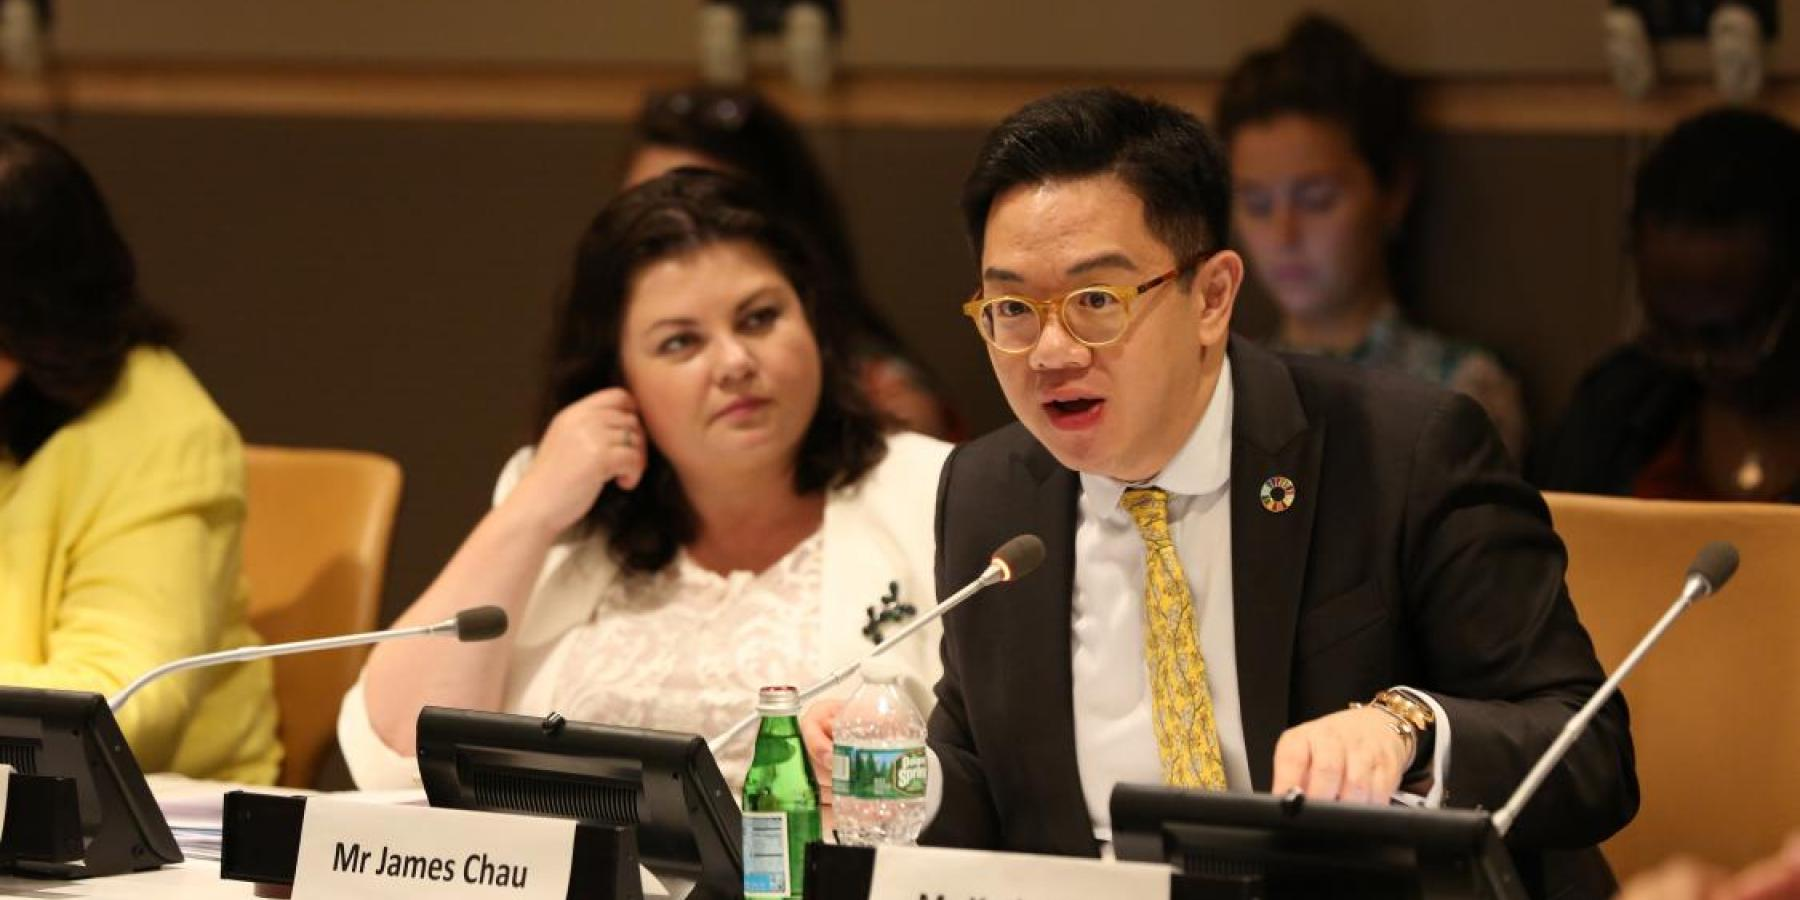 James Chau, WHO Goodwill Ambassador for SDGs and Health, delivered a rousing keynote speech at the interactive hearing for the HLM on NCDs, on 5 July 2018.